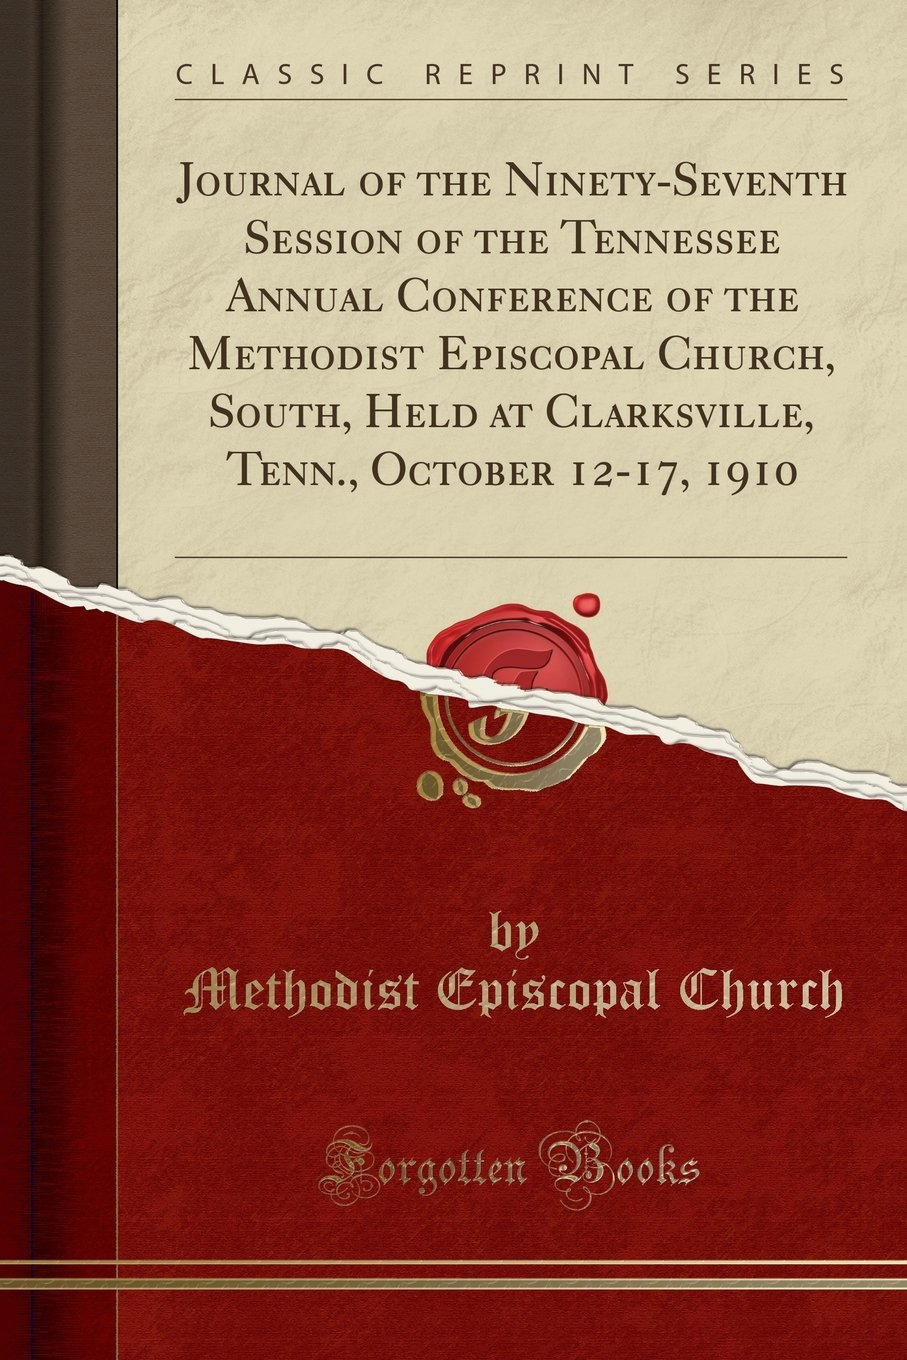 Download Journal of the Ninety-Seventh Session of the Tennessee Annual Conference of the Methodist Episcopal Church, South, Held at Clarksville, Tenn., October 12-17, 1910 (Classic Reprint) pdf